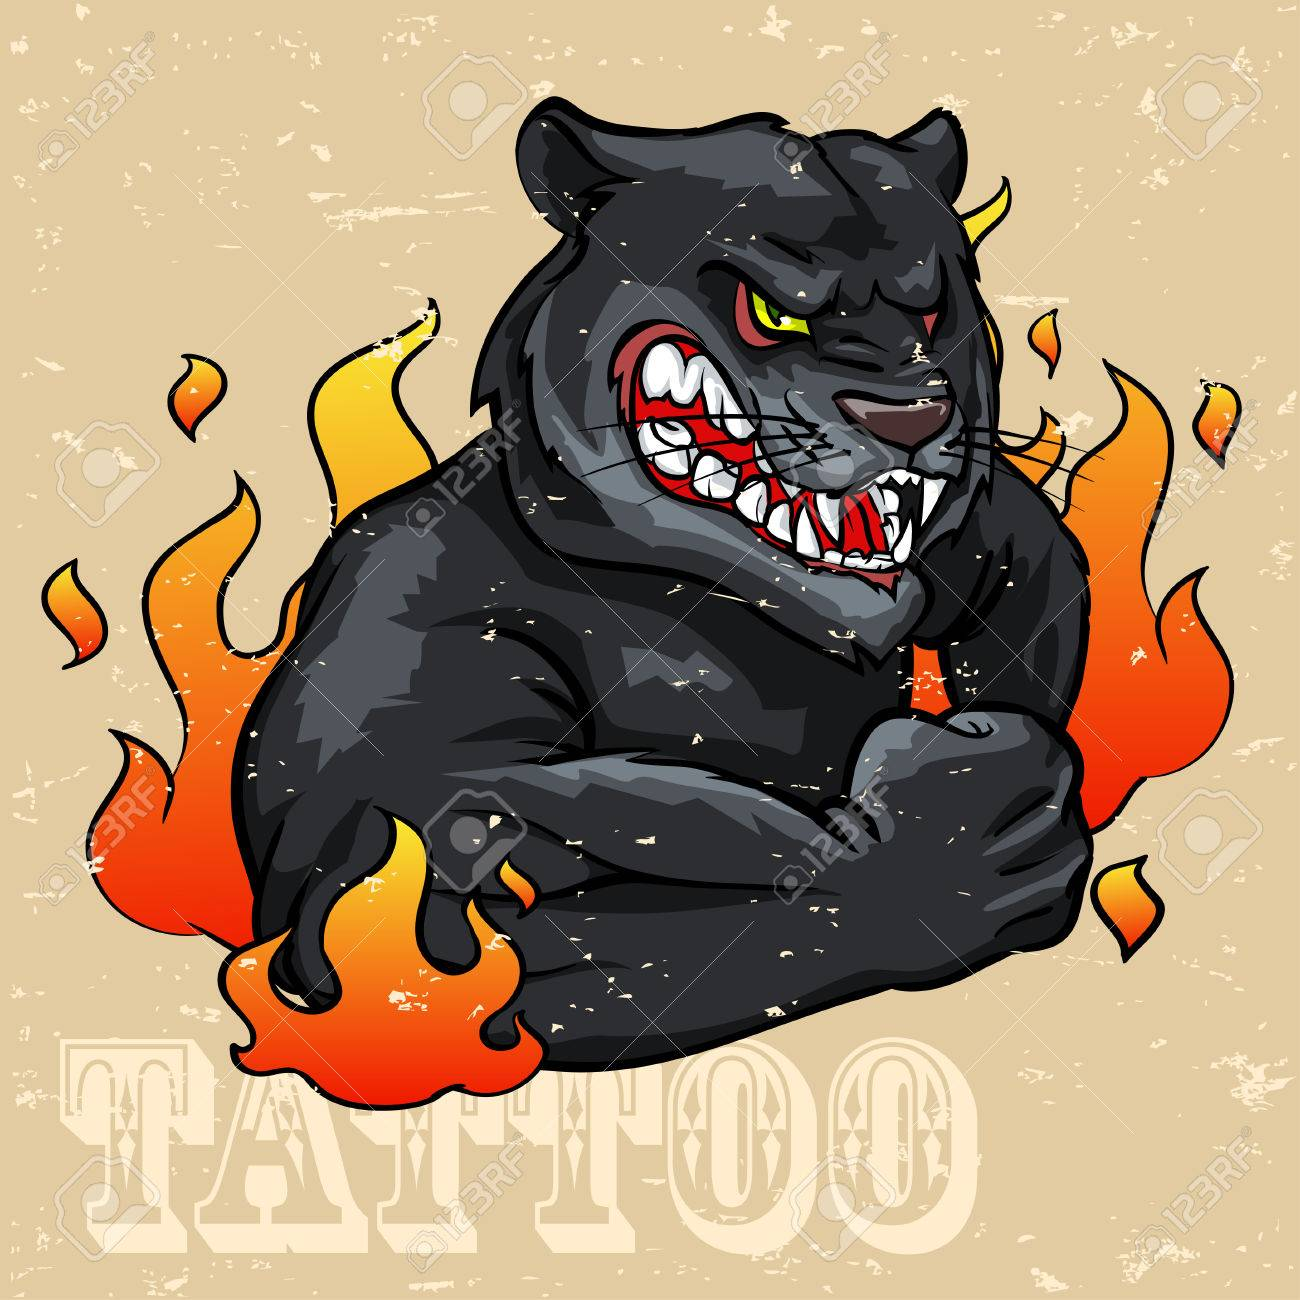 Black Panther Tattoo Design Grunge Effect Is Removable Royalty Free Cliparts Vectors And Stock Illustration Image 42814443